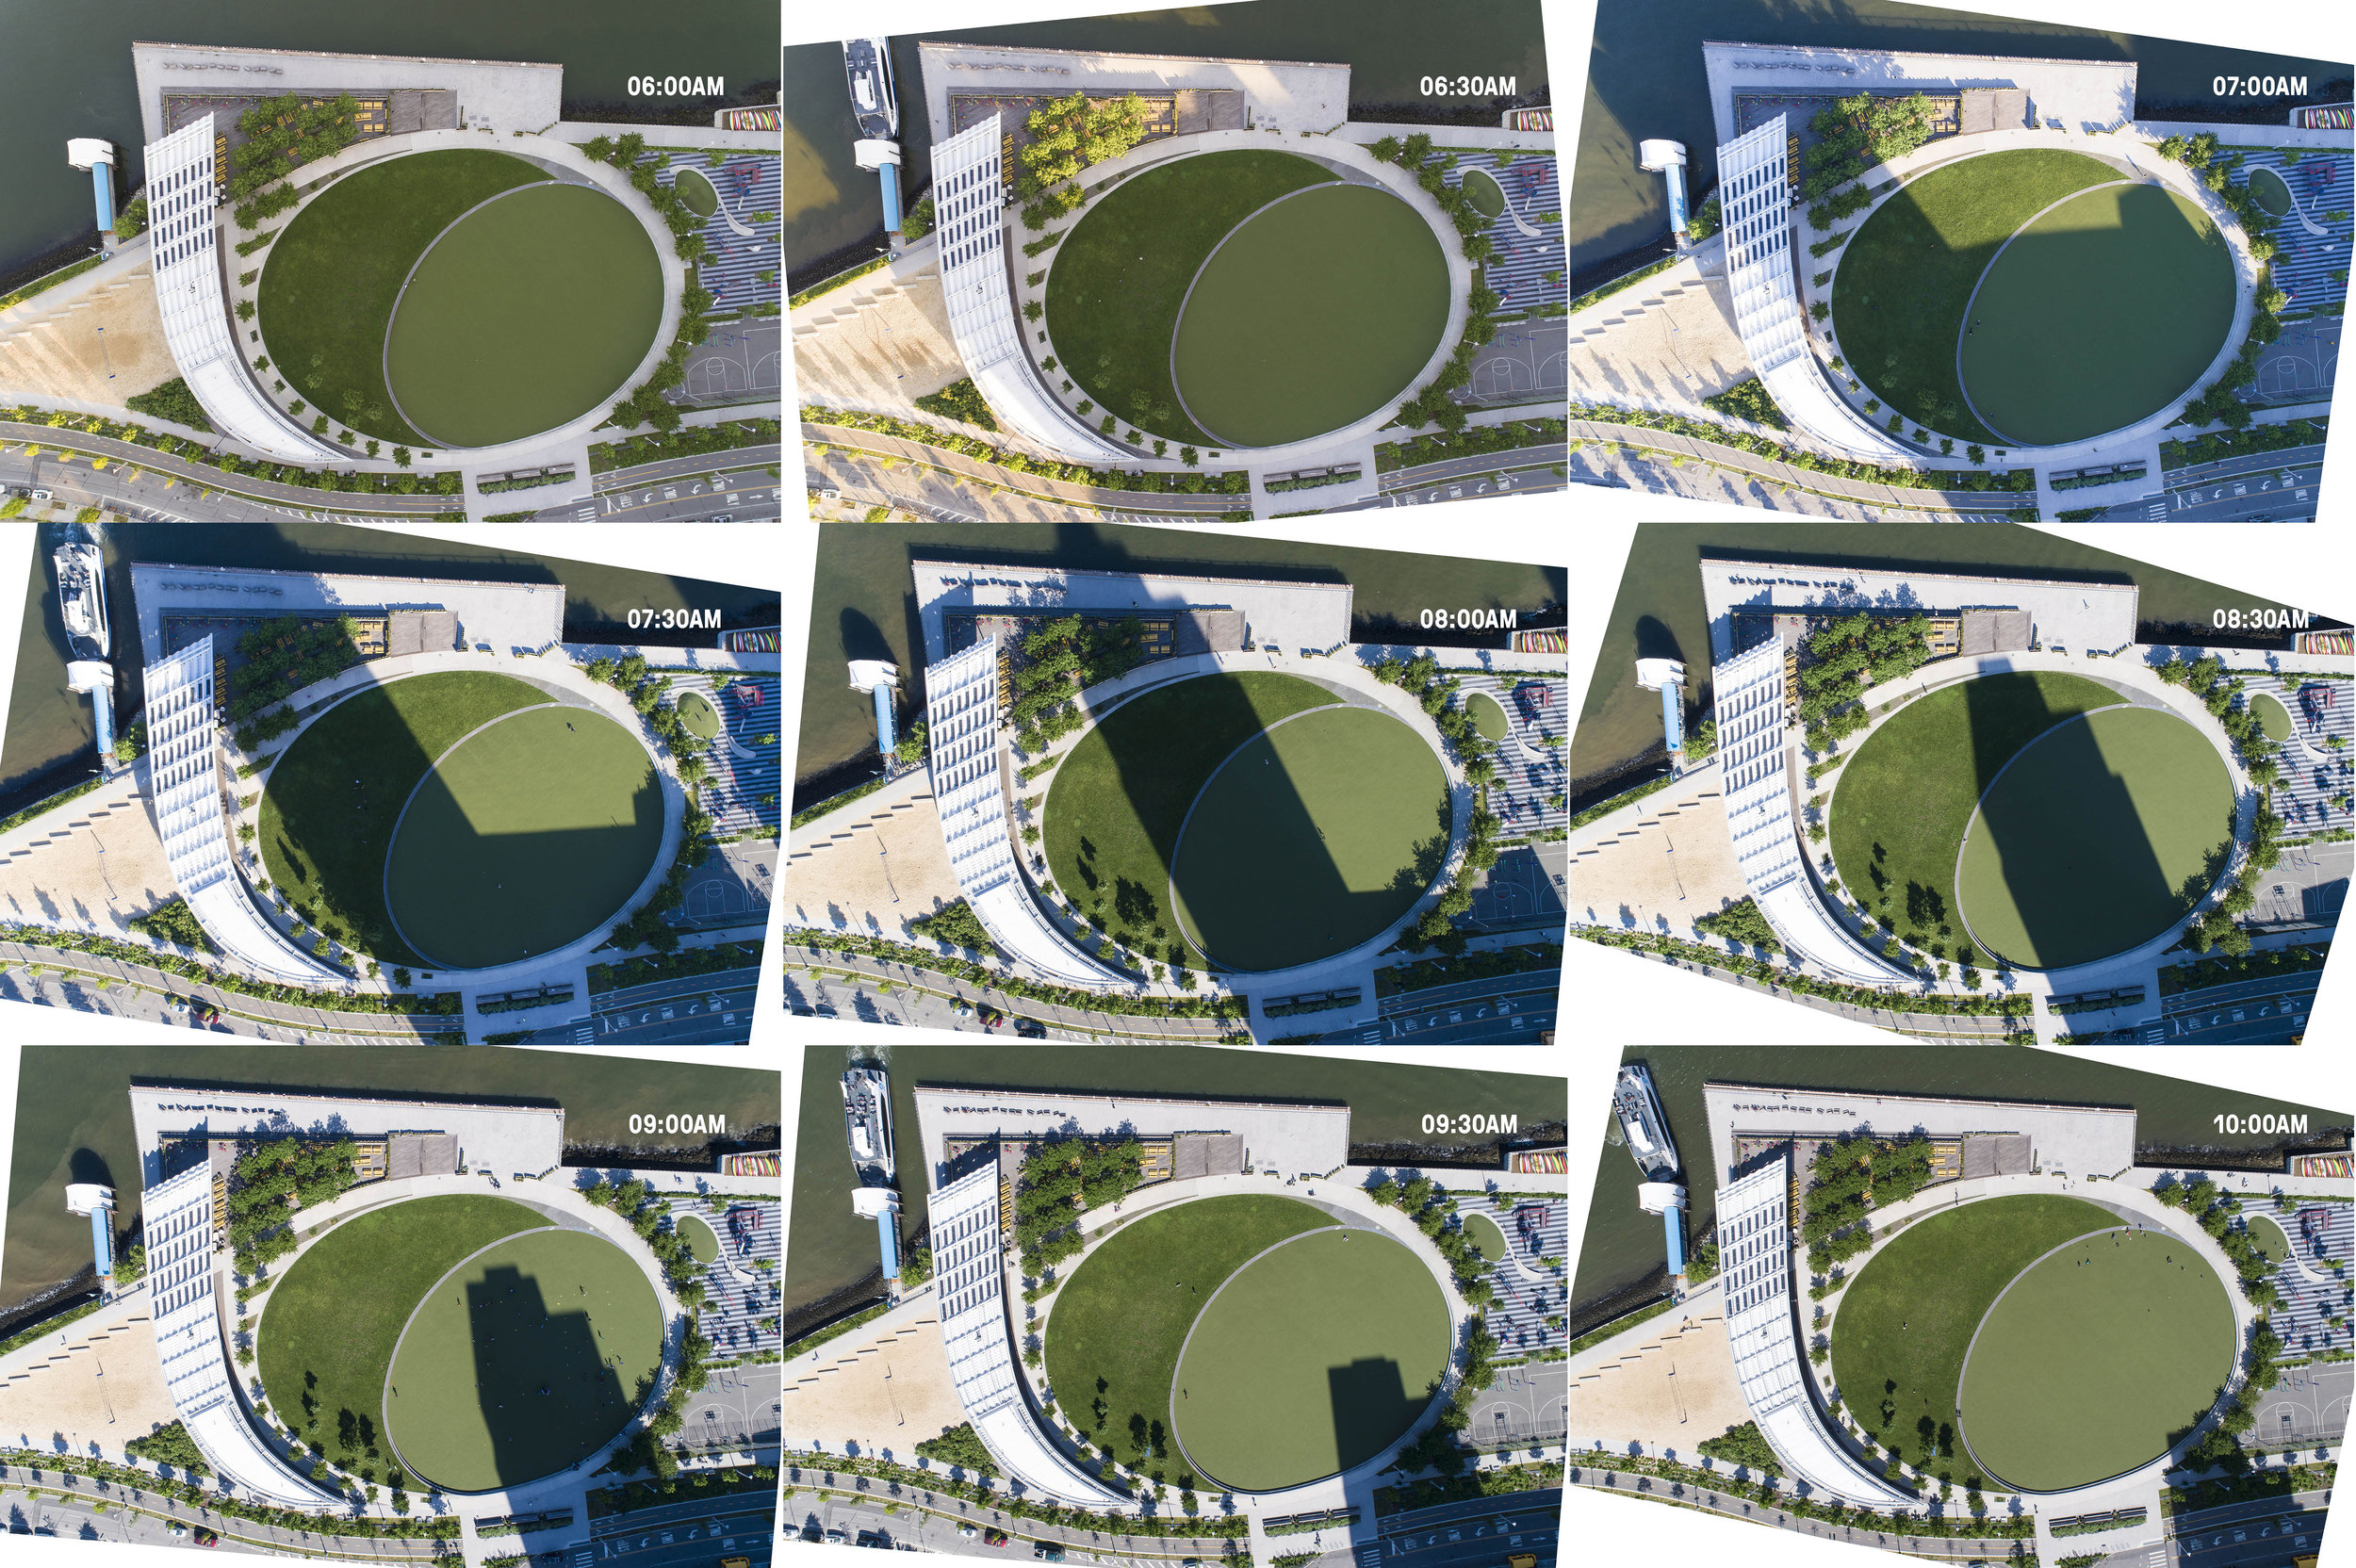 UAV Stills of the Central Green at Hunter's Point South Waterfront Park. Images by Bill Tatham/SWA and XL Lab